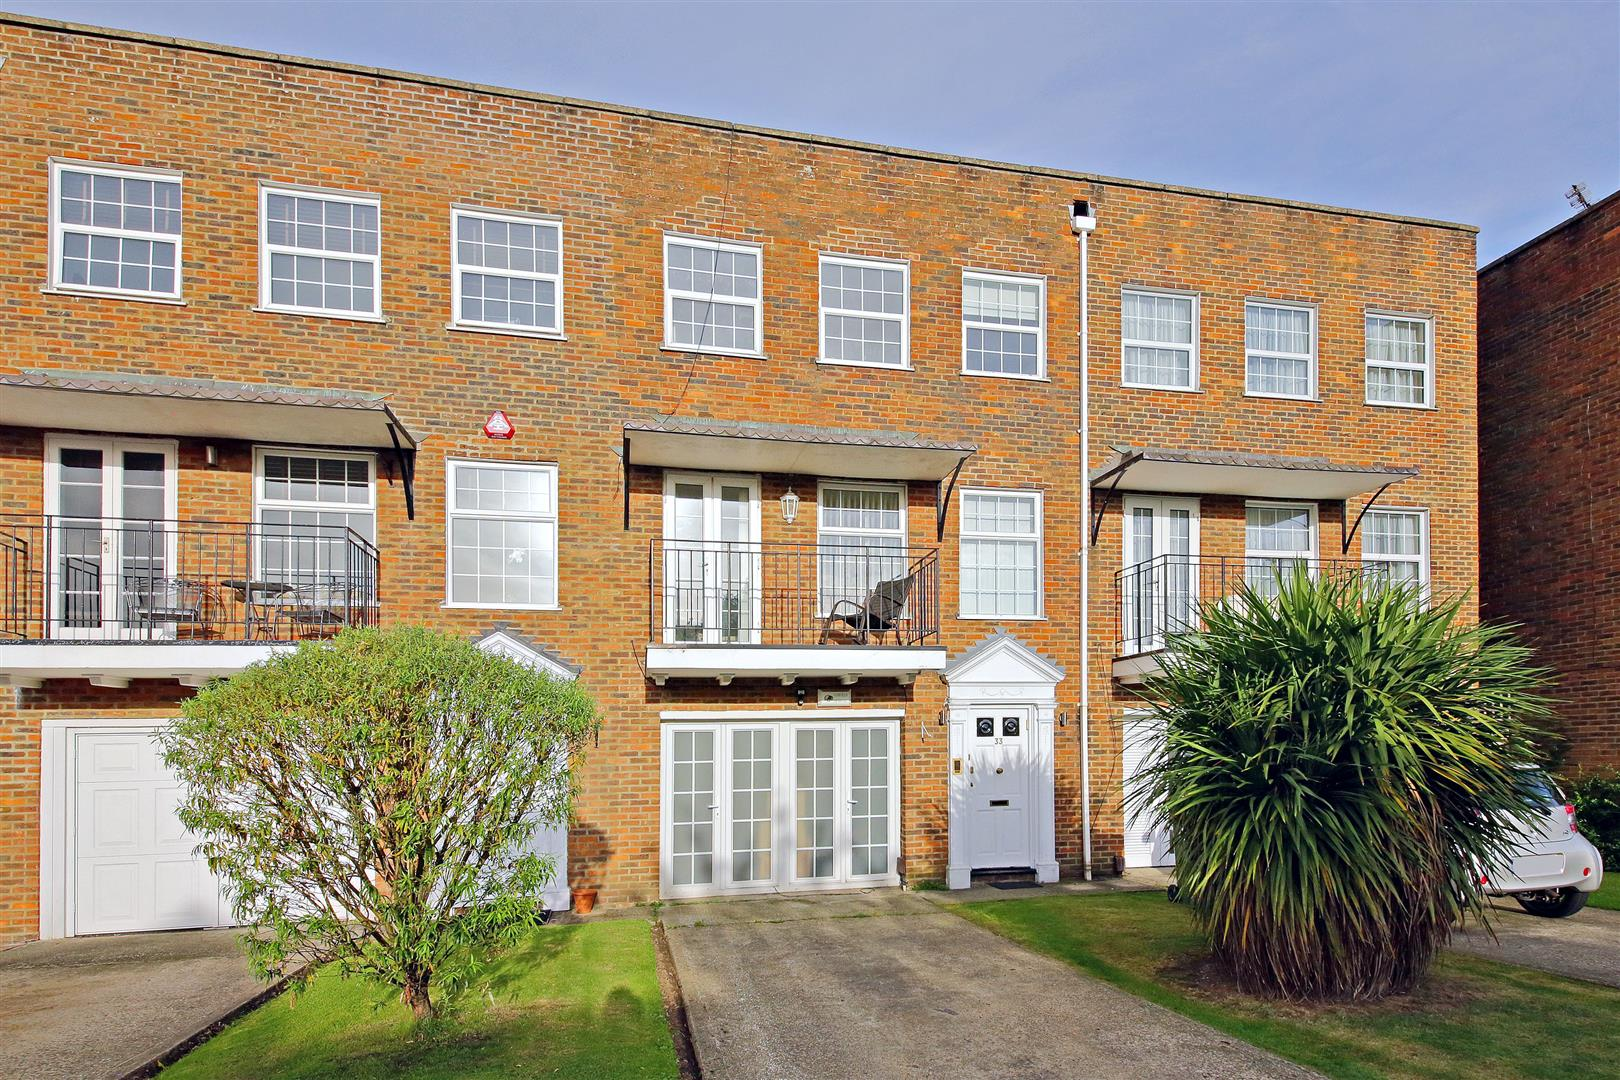 3 bedroom town house for sale in borehamwood